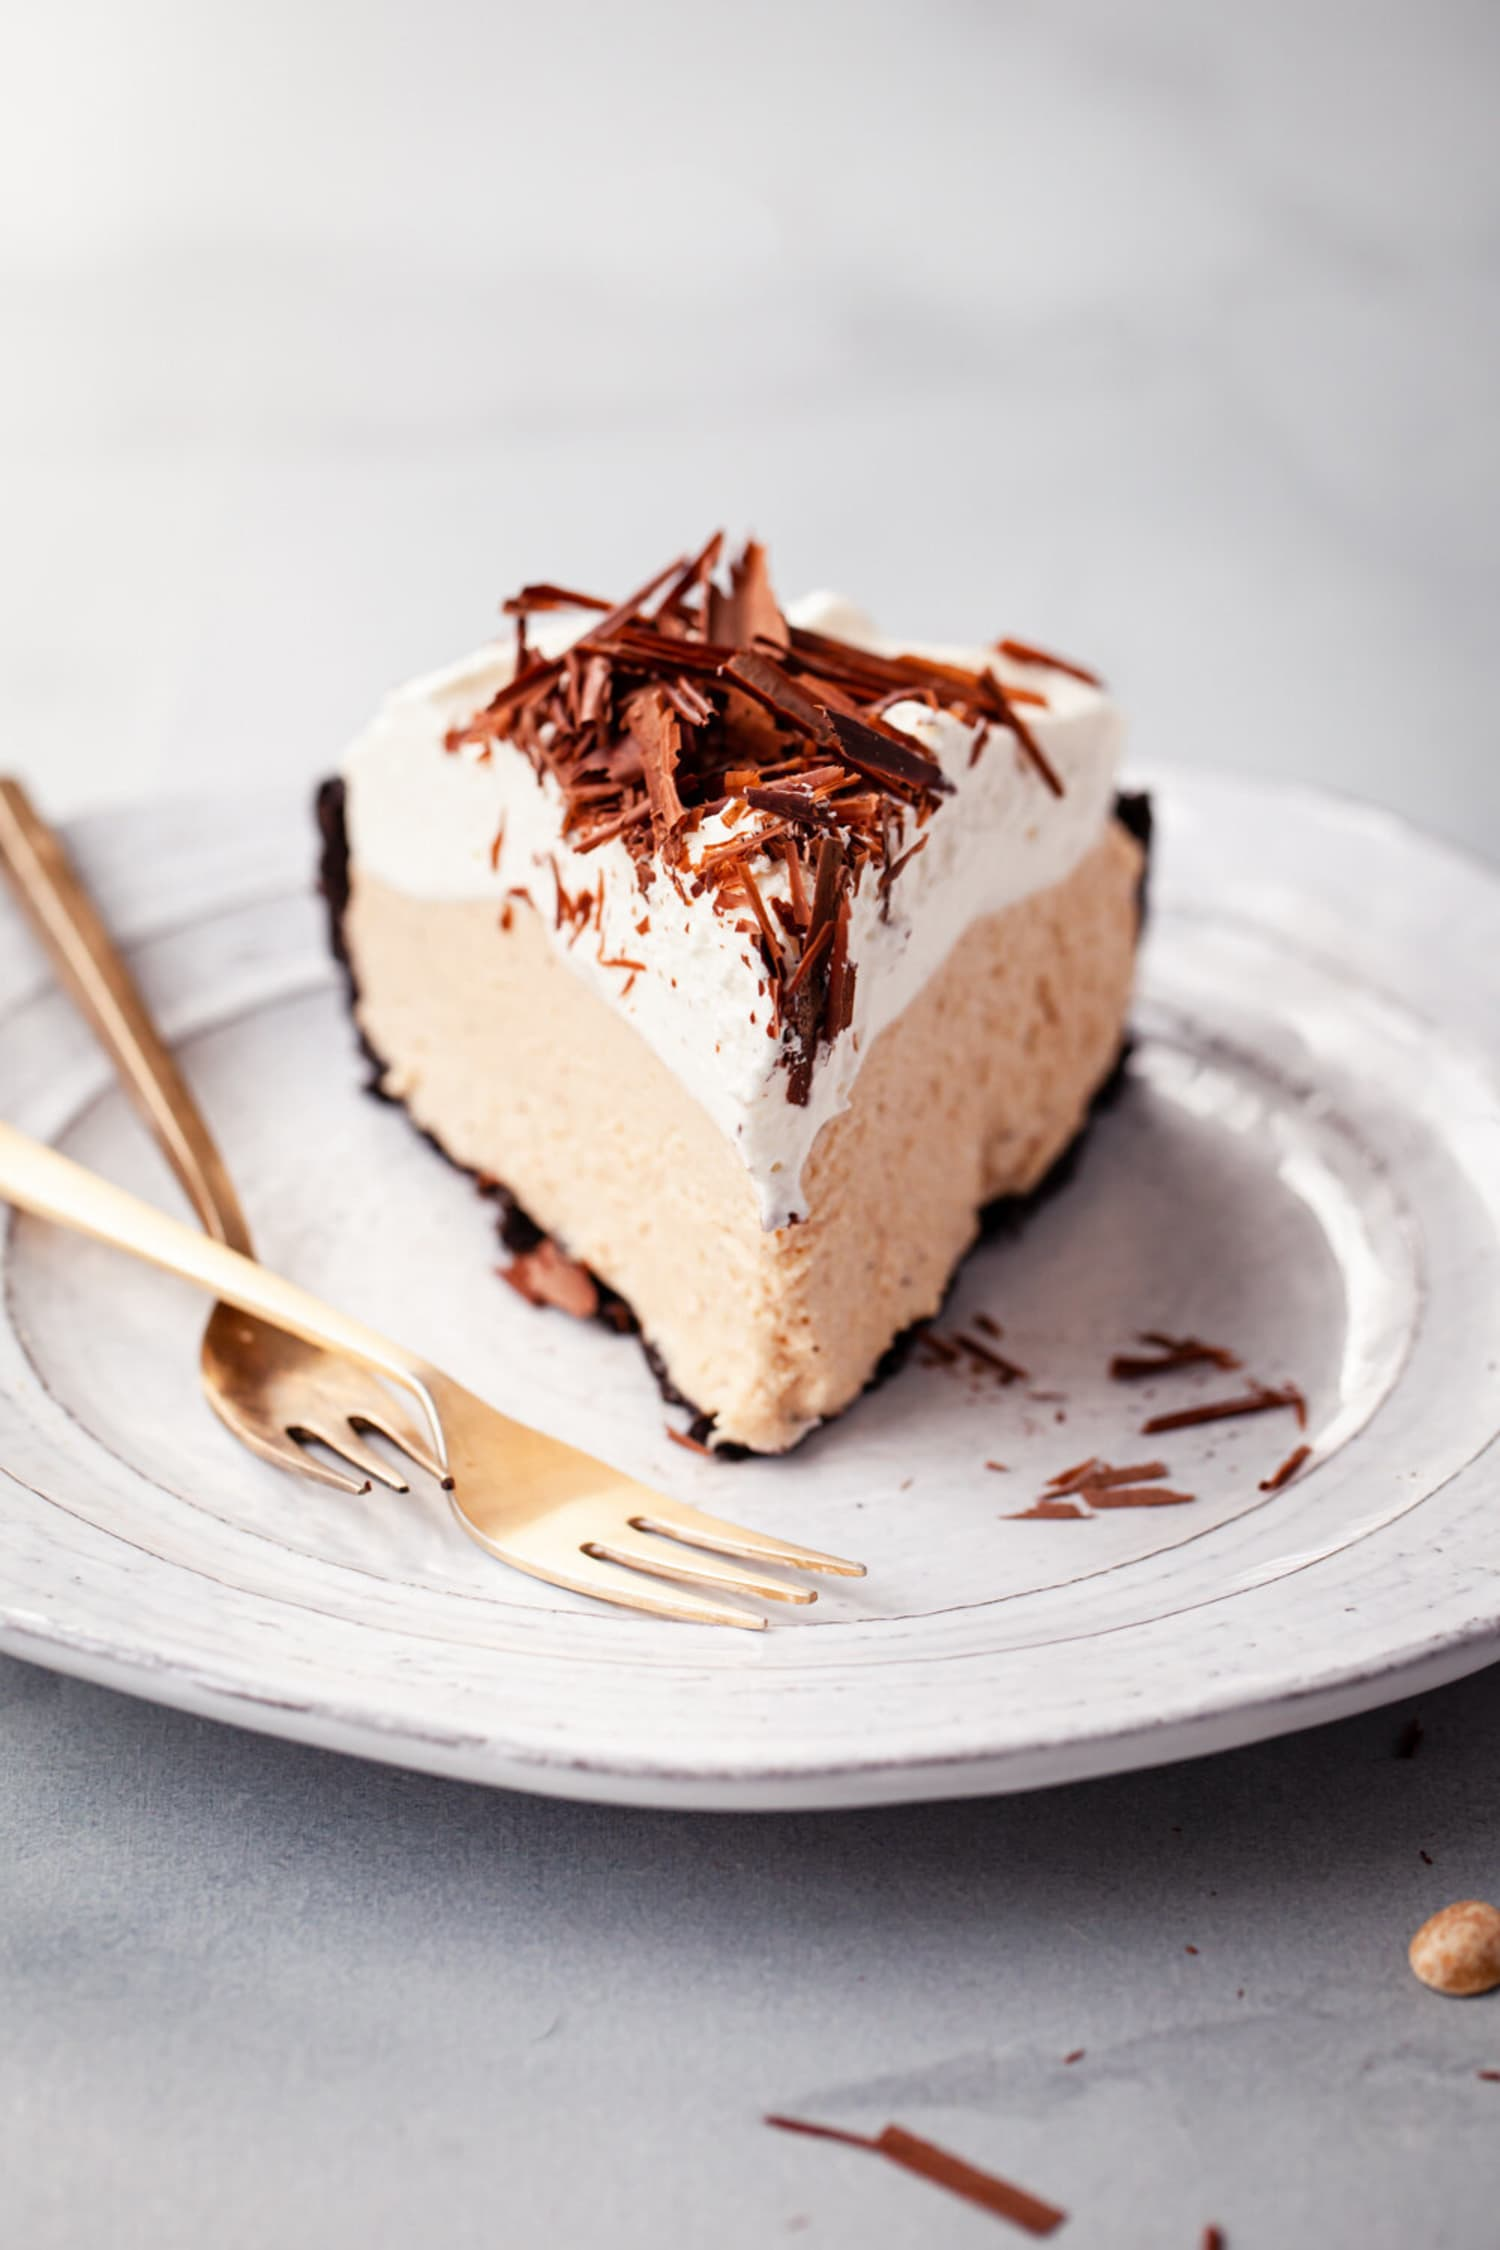 Salted Honey No-Bake Peanut Butter Pie Is the Dessert You've Been Waiting For